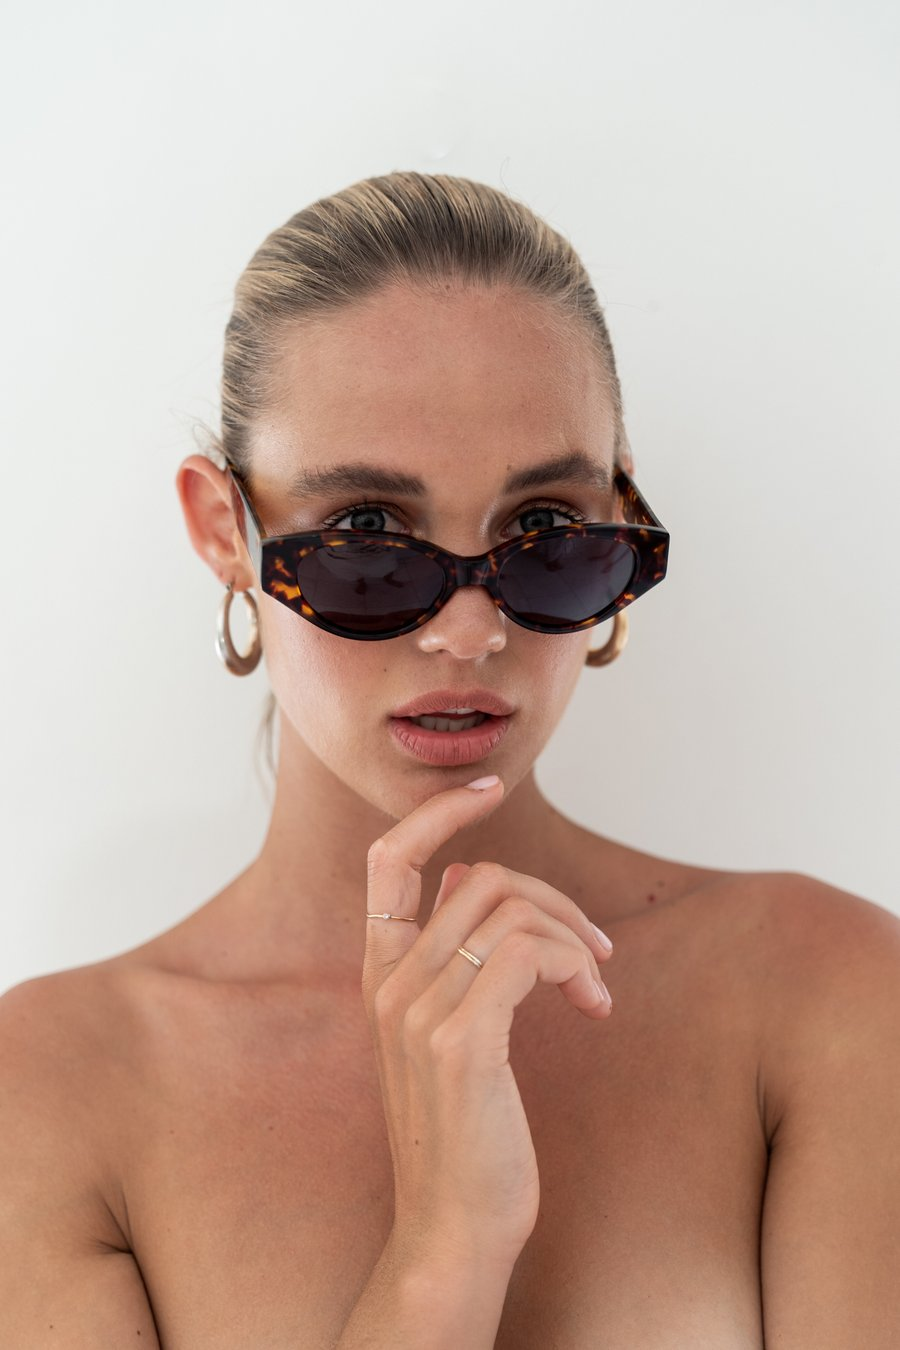 The Joanie - Tort by LUV LOU, available on luvlou.com.au for $110 Elsa Hosk Sunglasses Exact Product